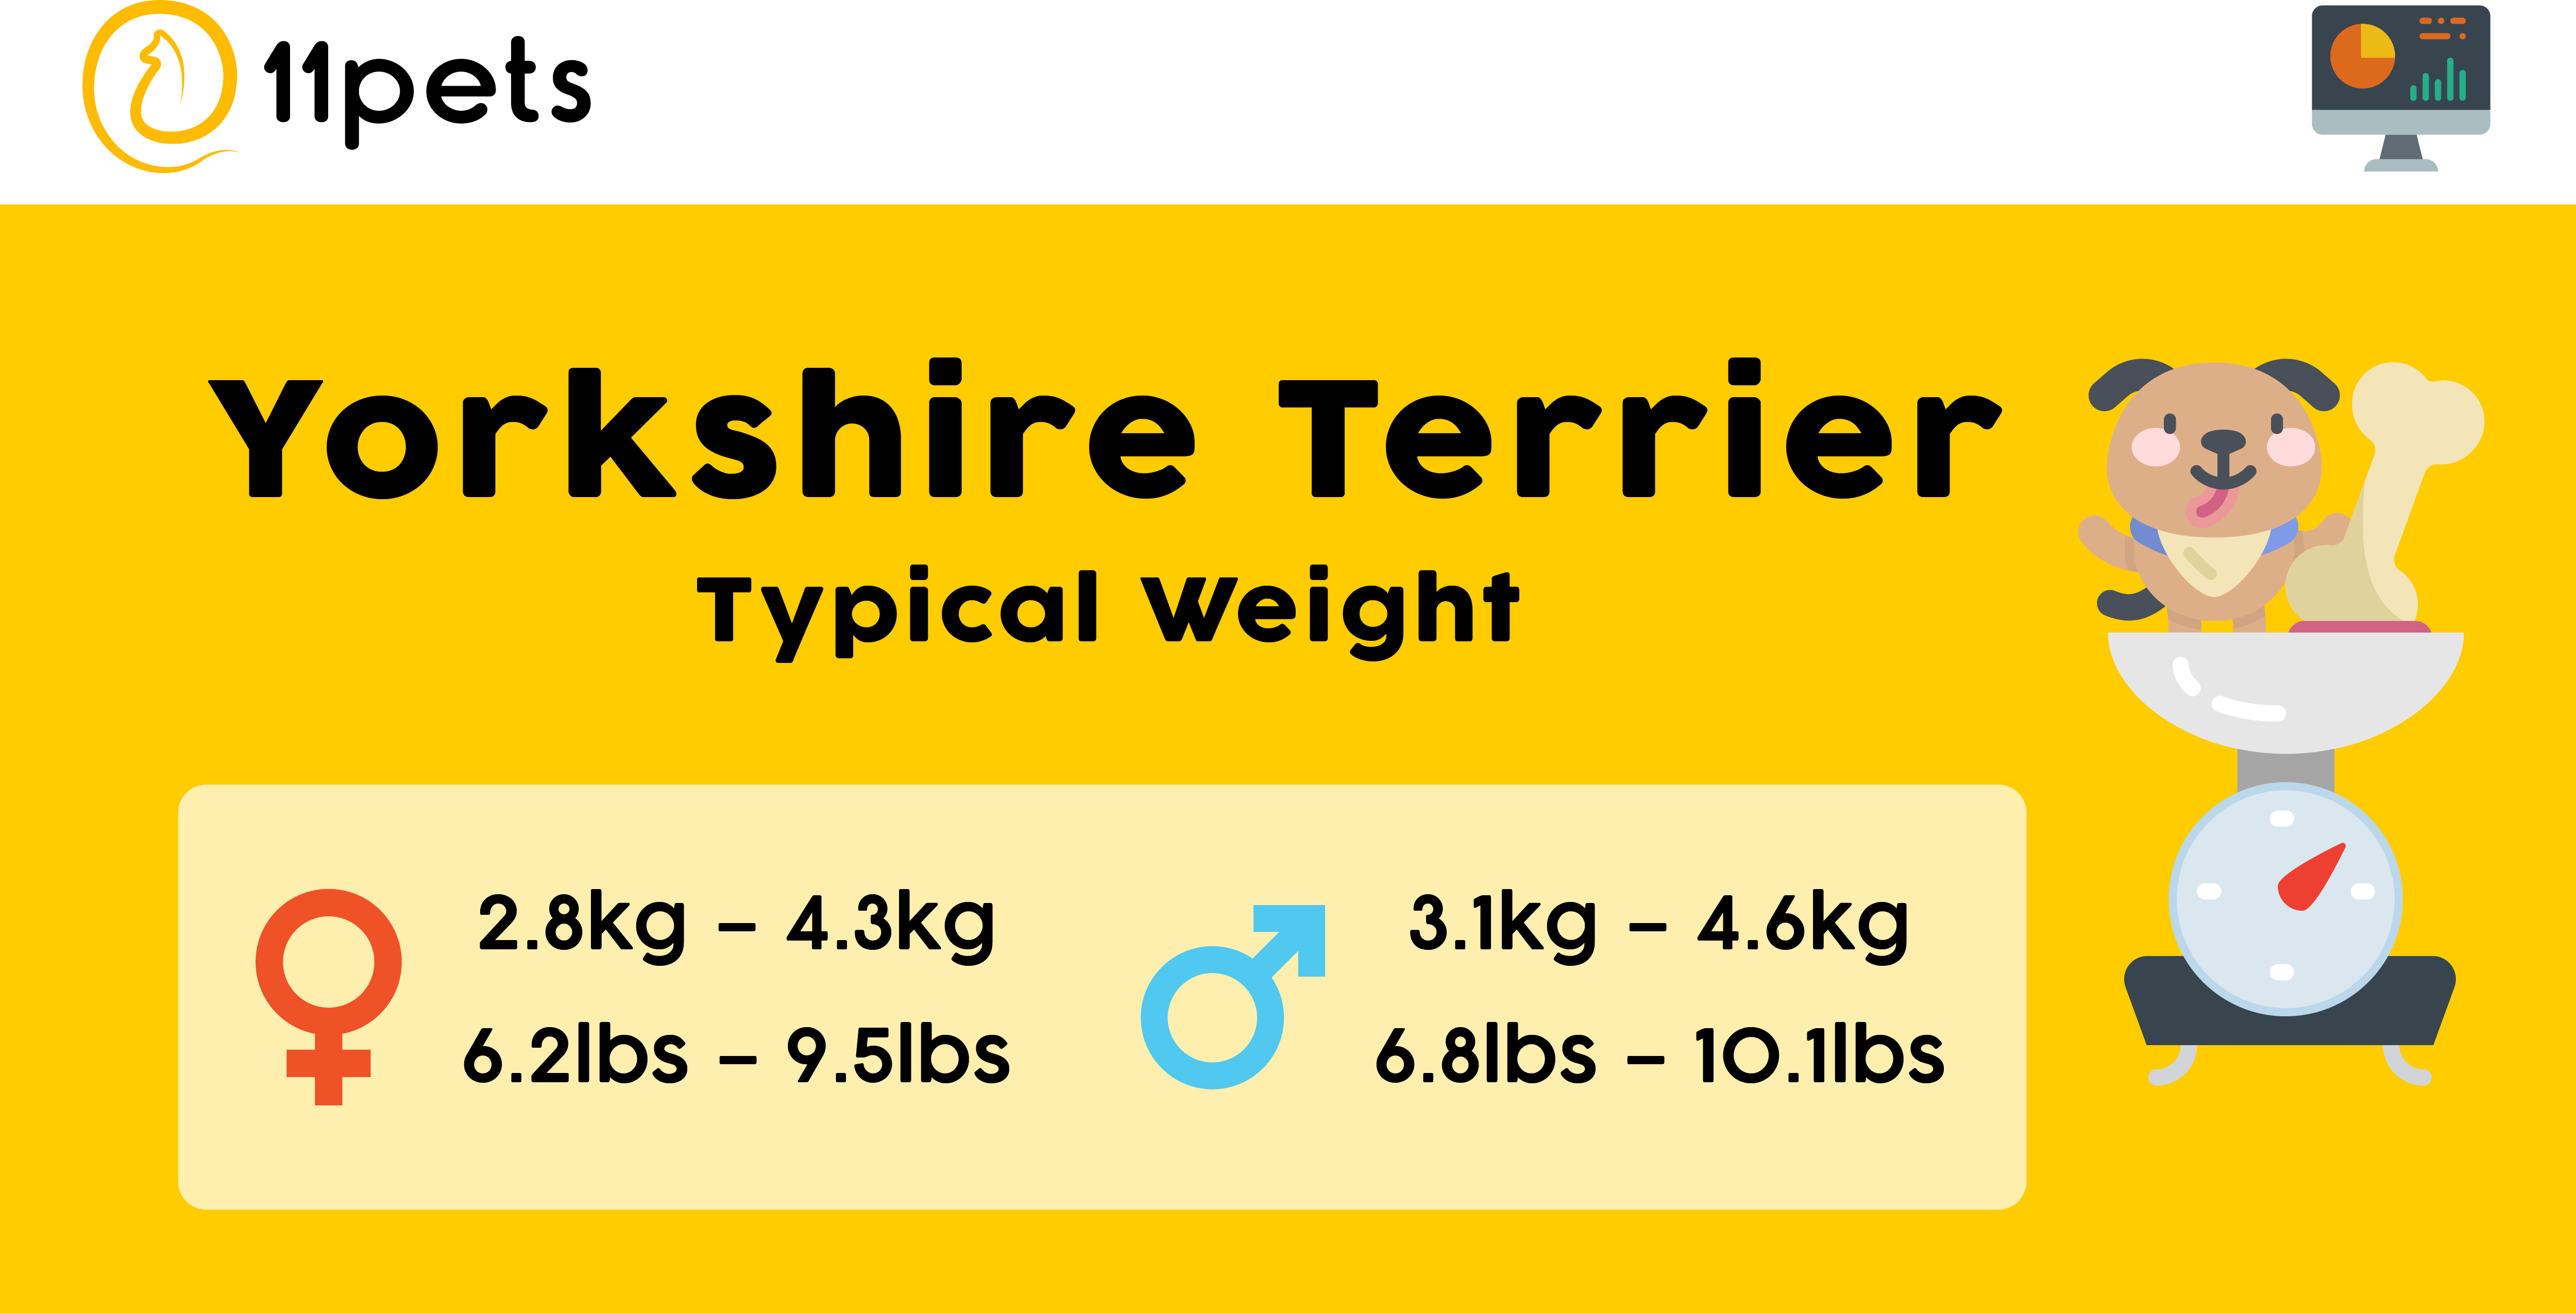 Typical weight for Yorkshire Terriers